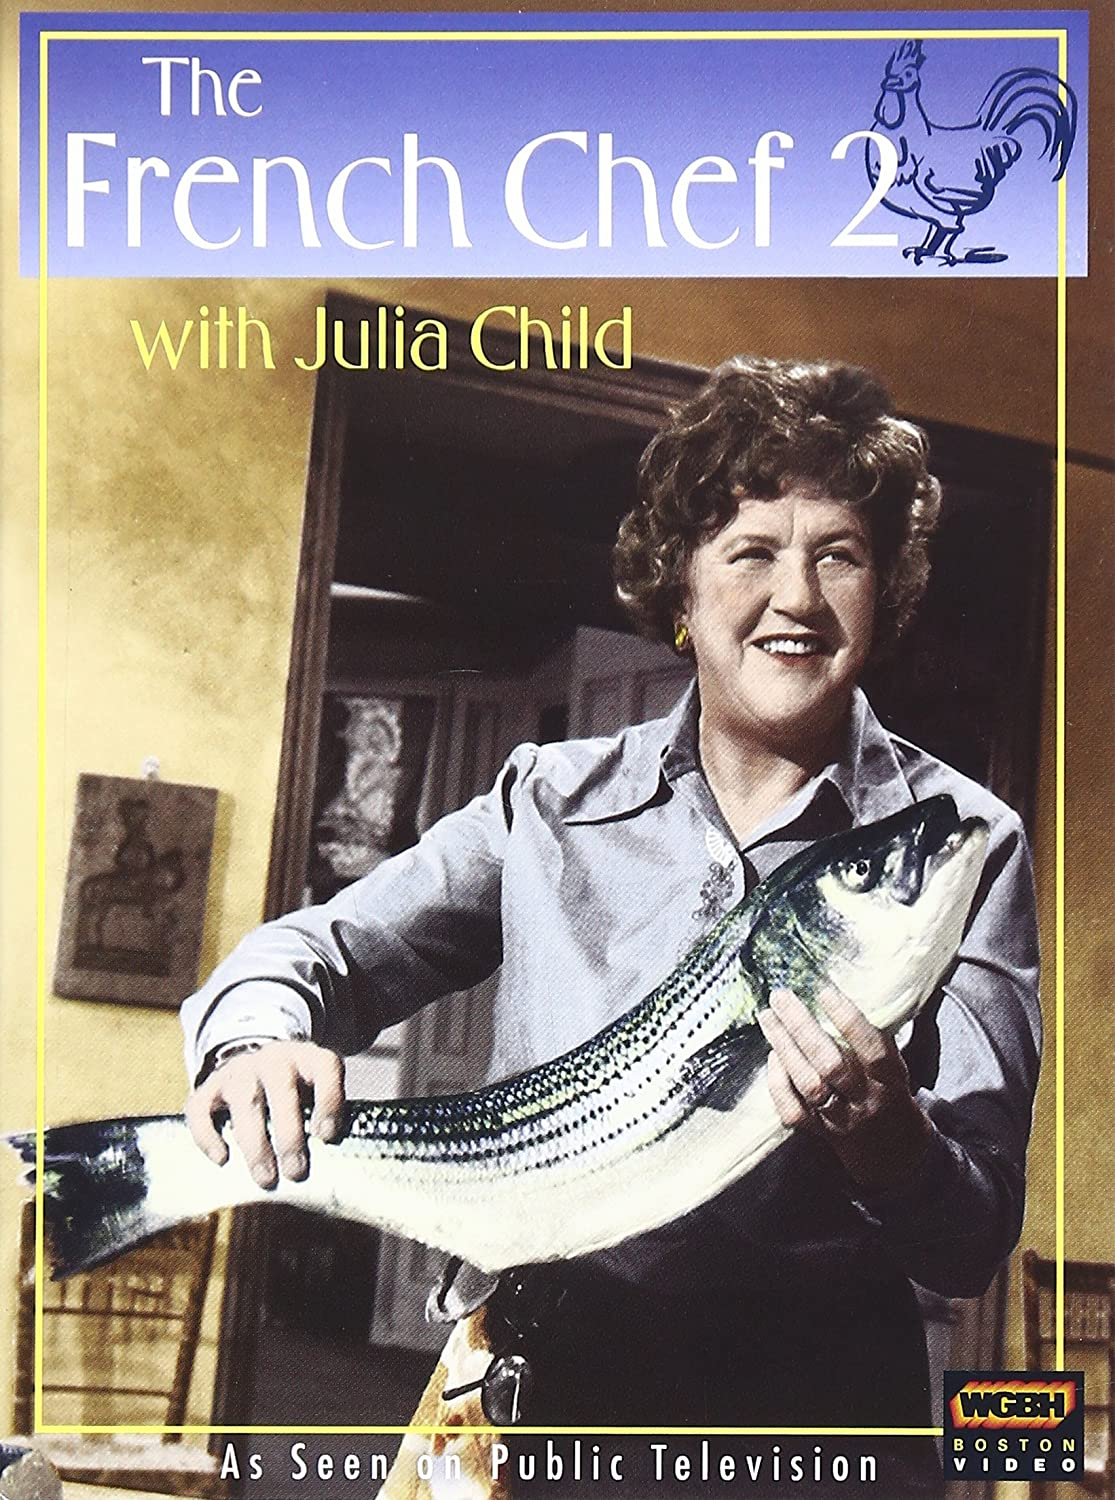 The French Chef With Julia Child, Vol. 2 Steven A. Jones Rodney Liber Steven Brown Kevin Bacon